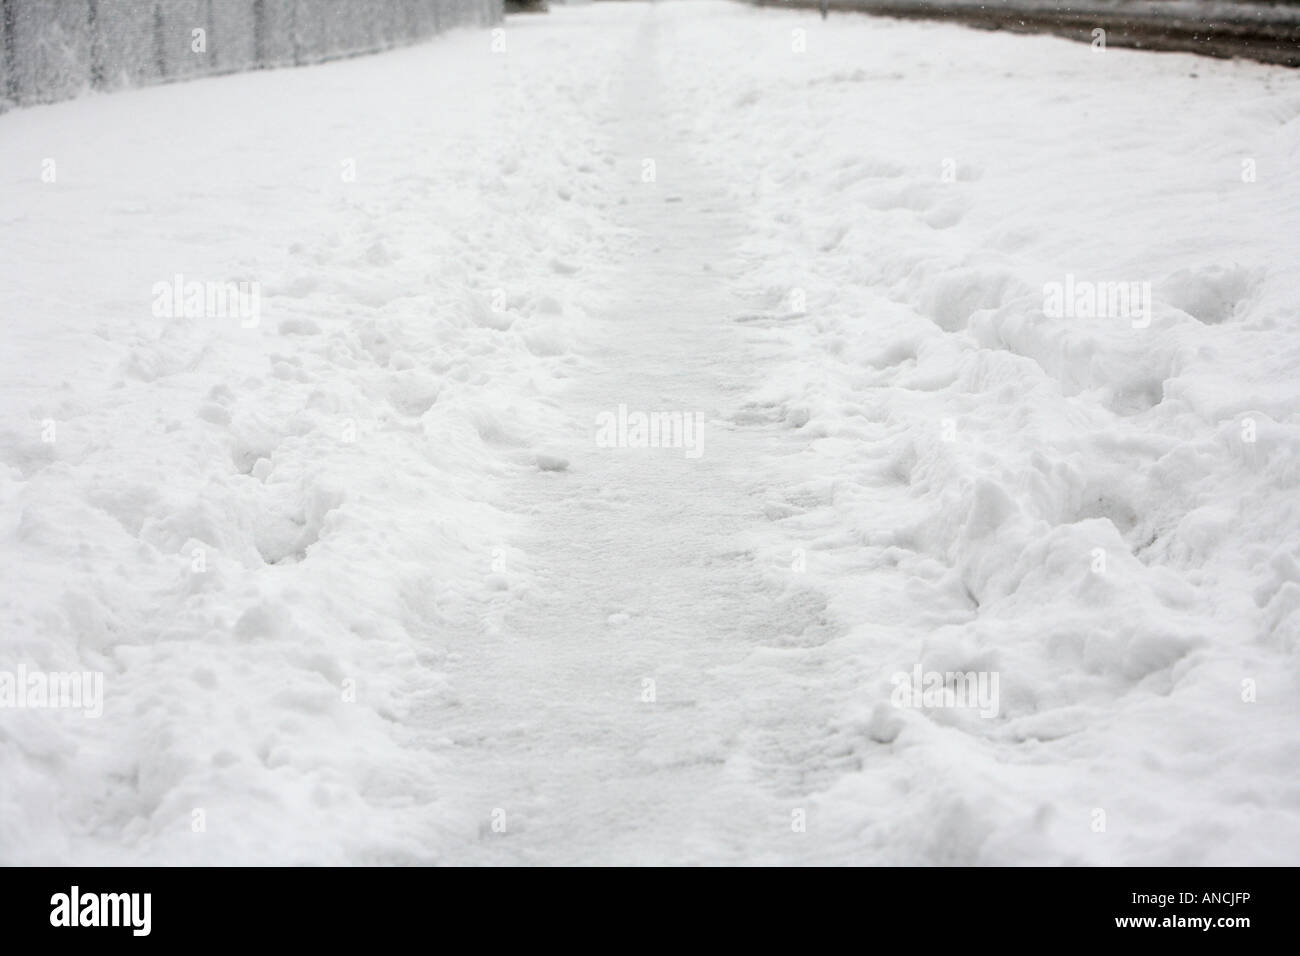 path worn through the snow on footpath creating icy path with footprints slippy - Stock Image